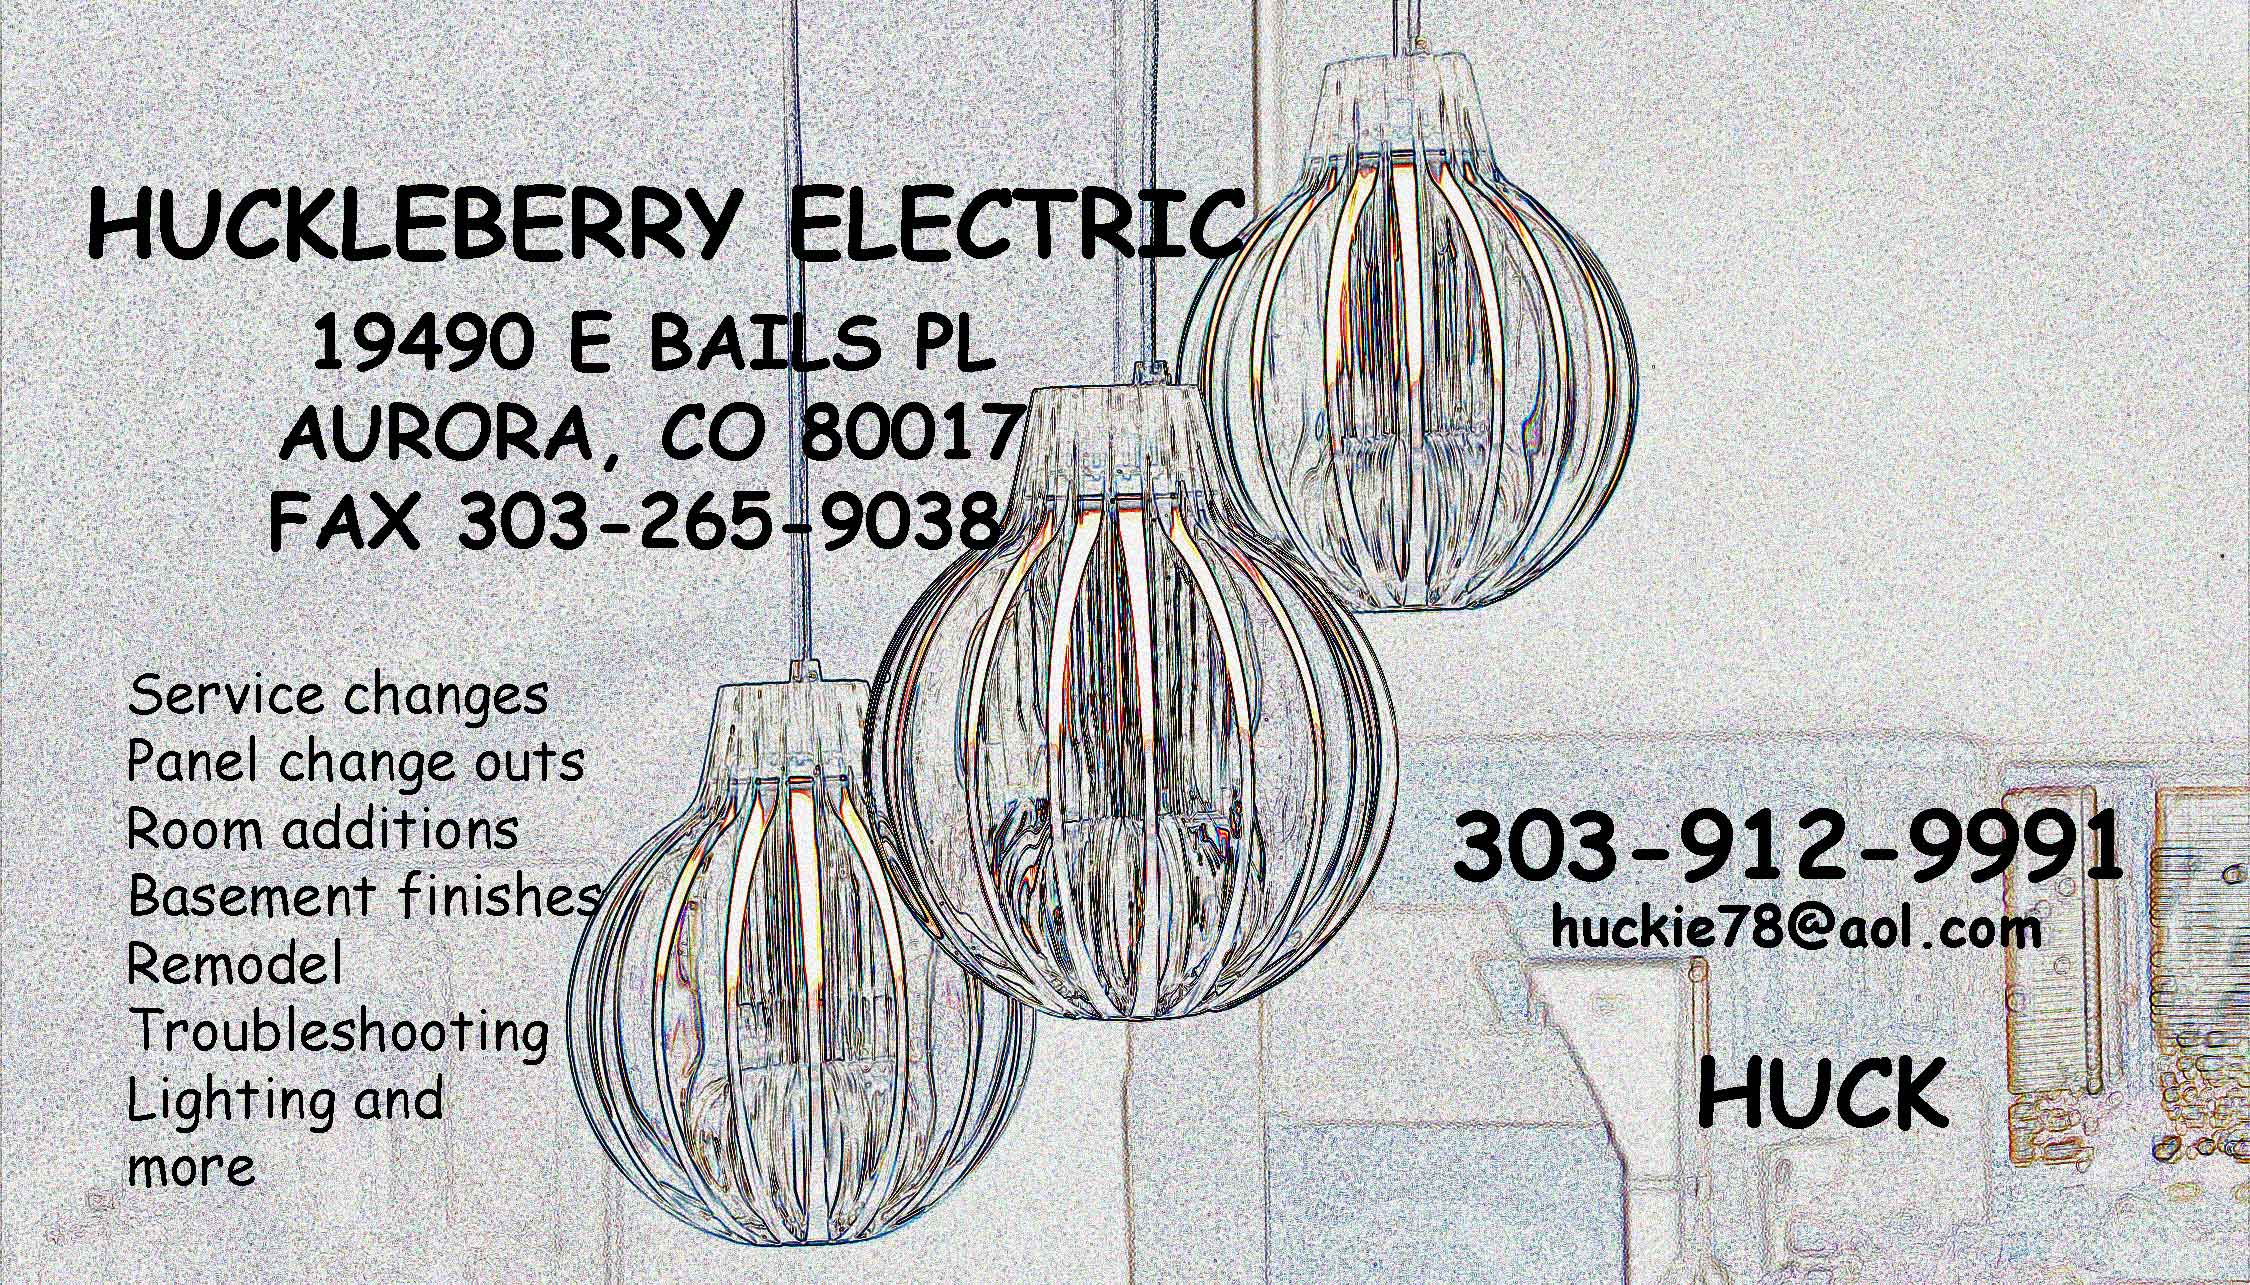 Aurora - denver electrician, Aurora - denver electrical contractors, aurora co electrician, aurora electrical contractor, Aruora 80017